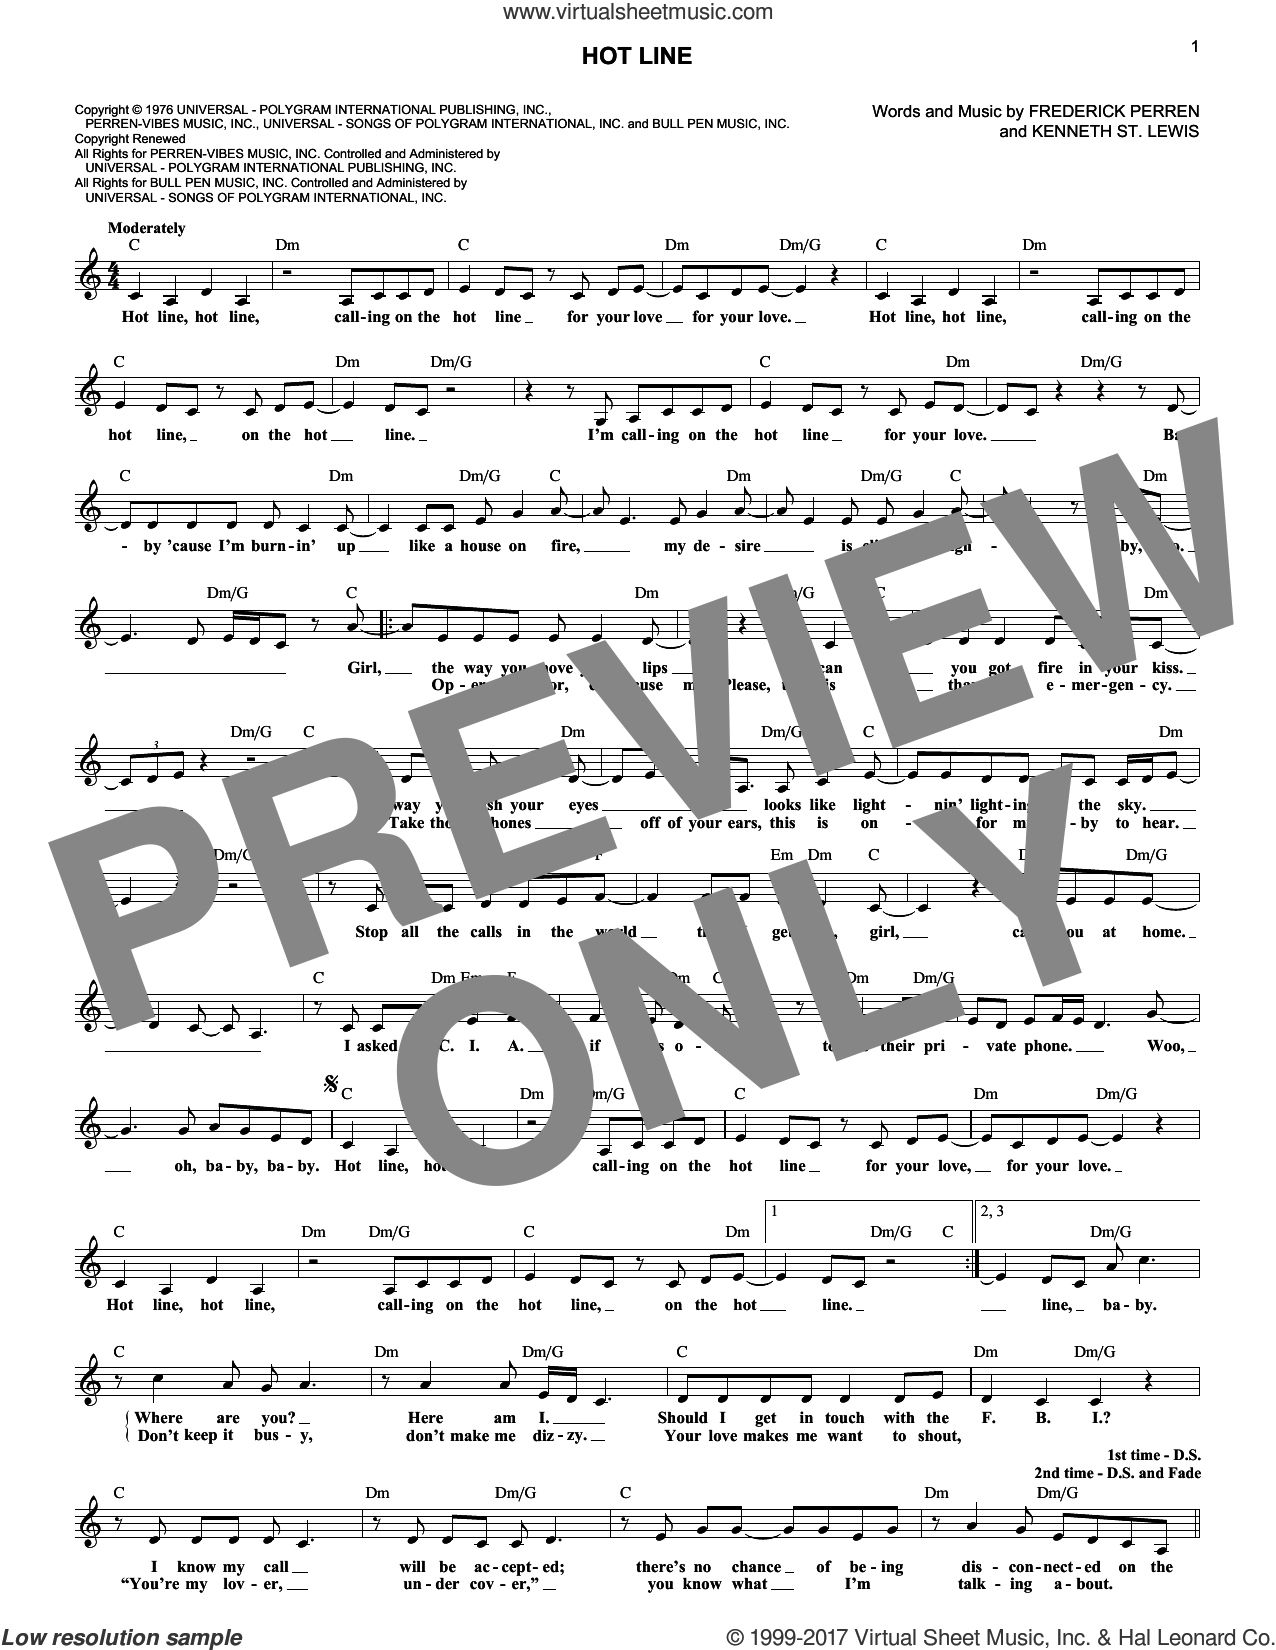 Hot Line sheet music for voice and other instruments (fake book) by The Sylvers, Frederick Perren and Kenneth St. Lewis, intermediate skill level